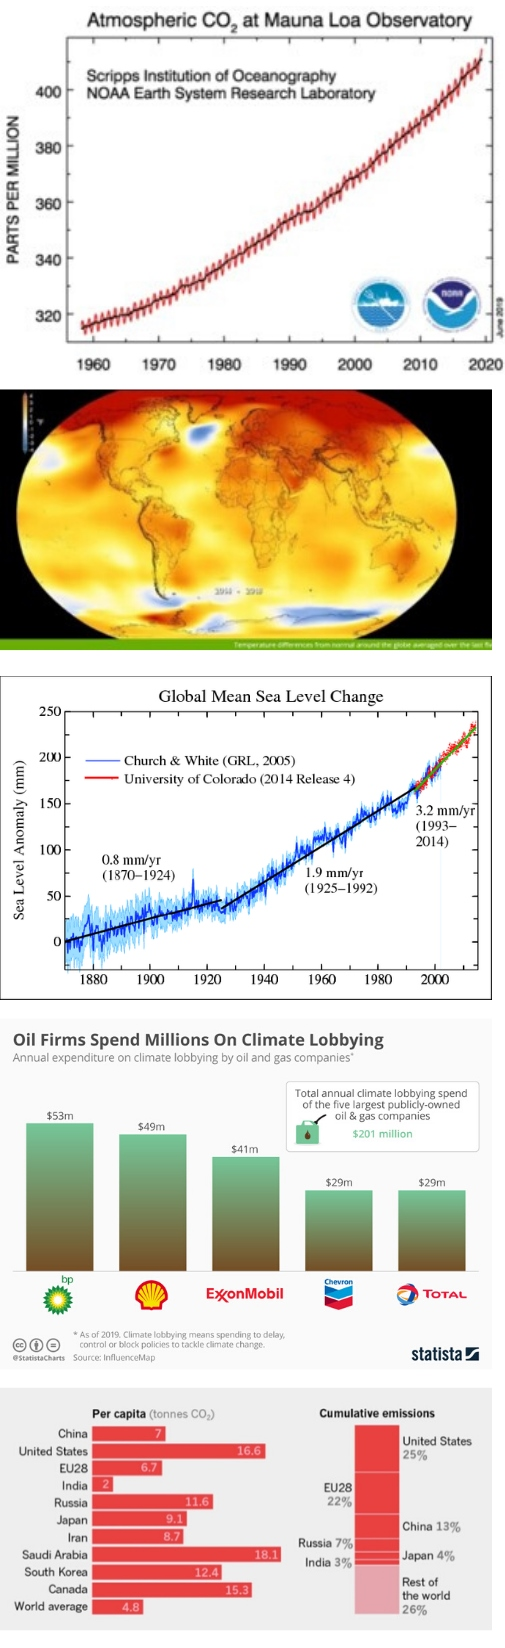 Five different graphs and images showing sea level rise, rise in CO2, rise in temperatures, oil industry spend on climate change lobbying, and per capita emissions